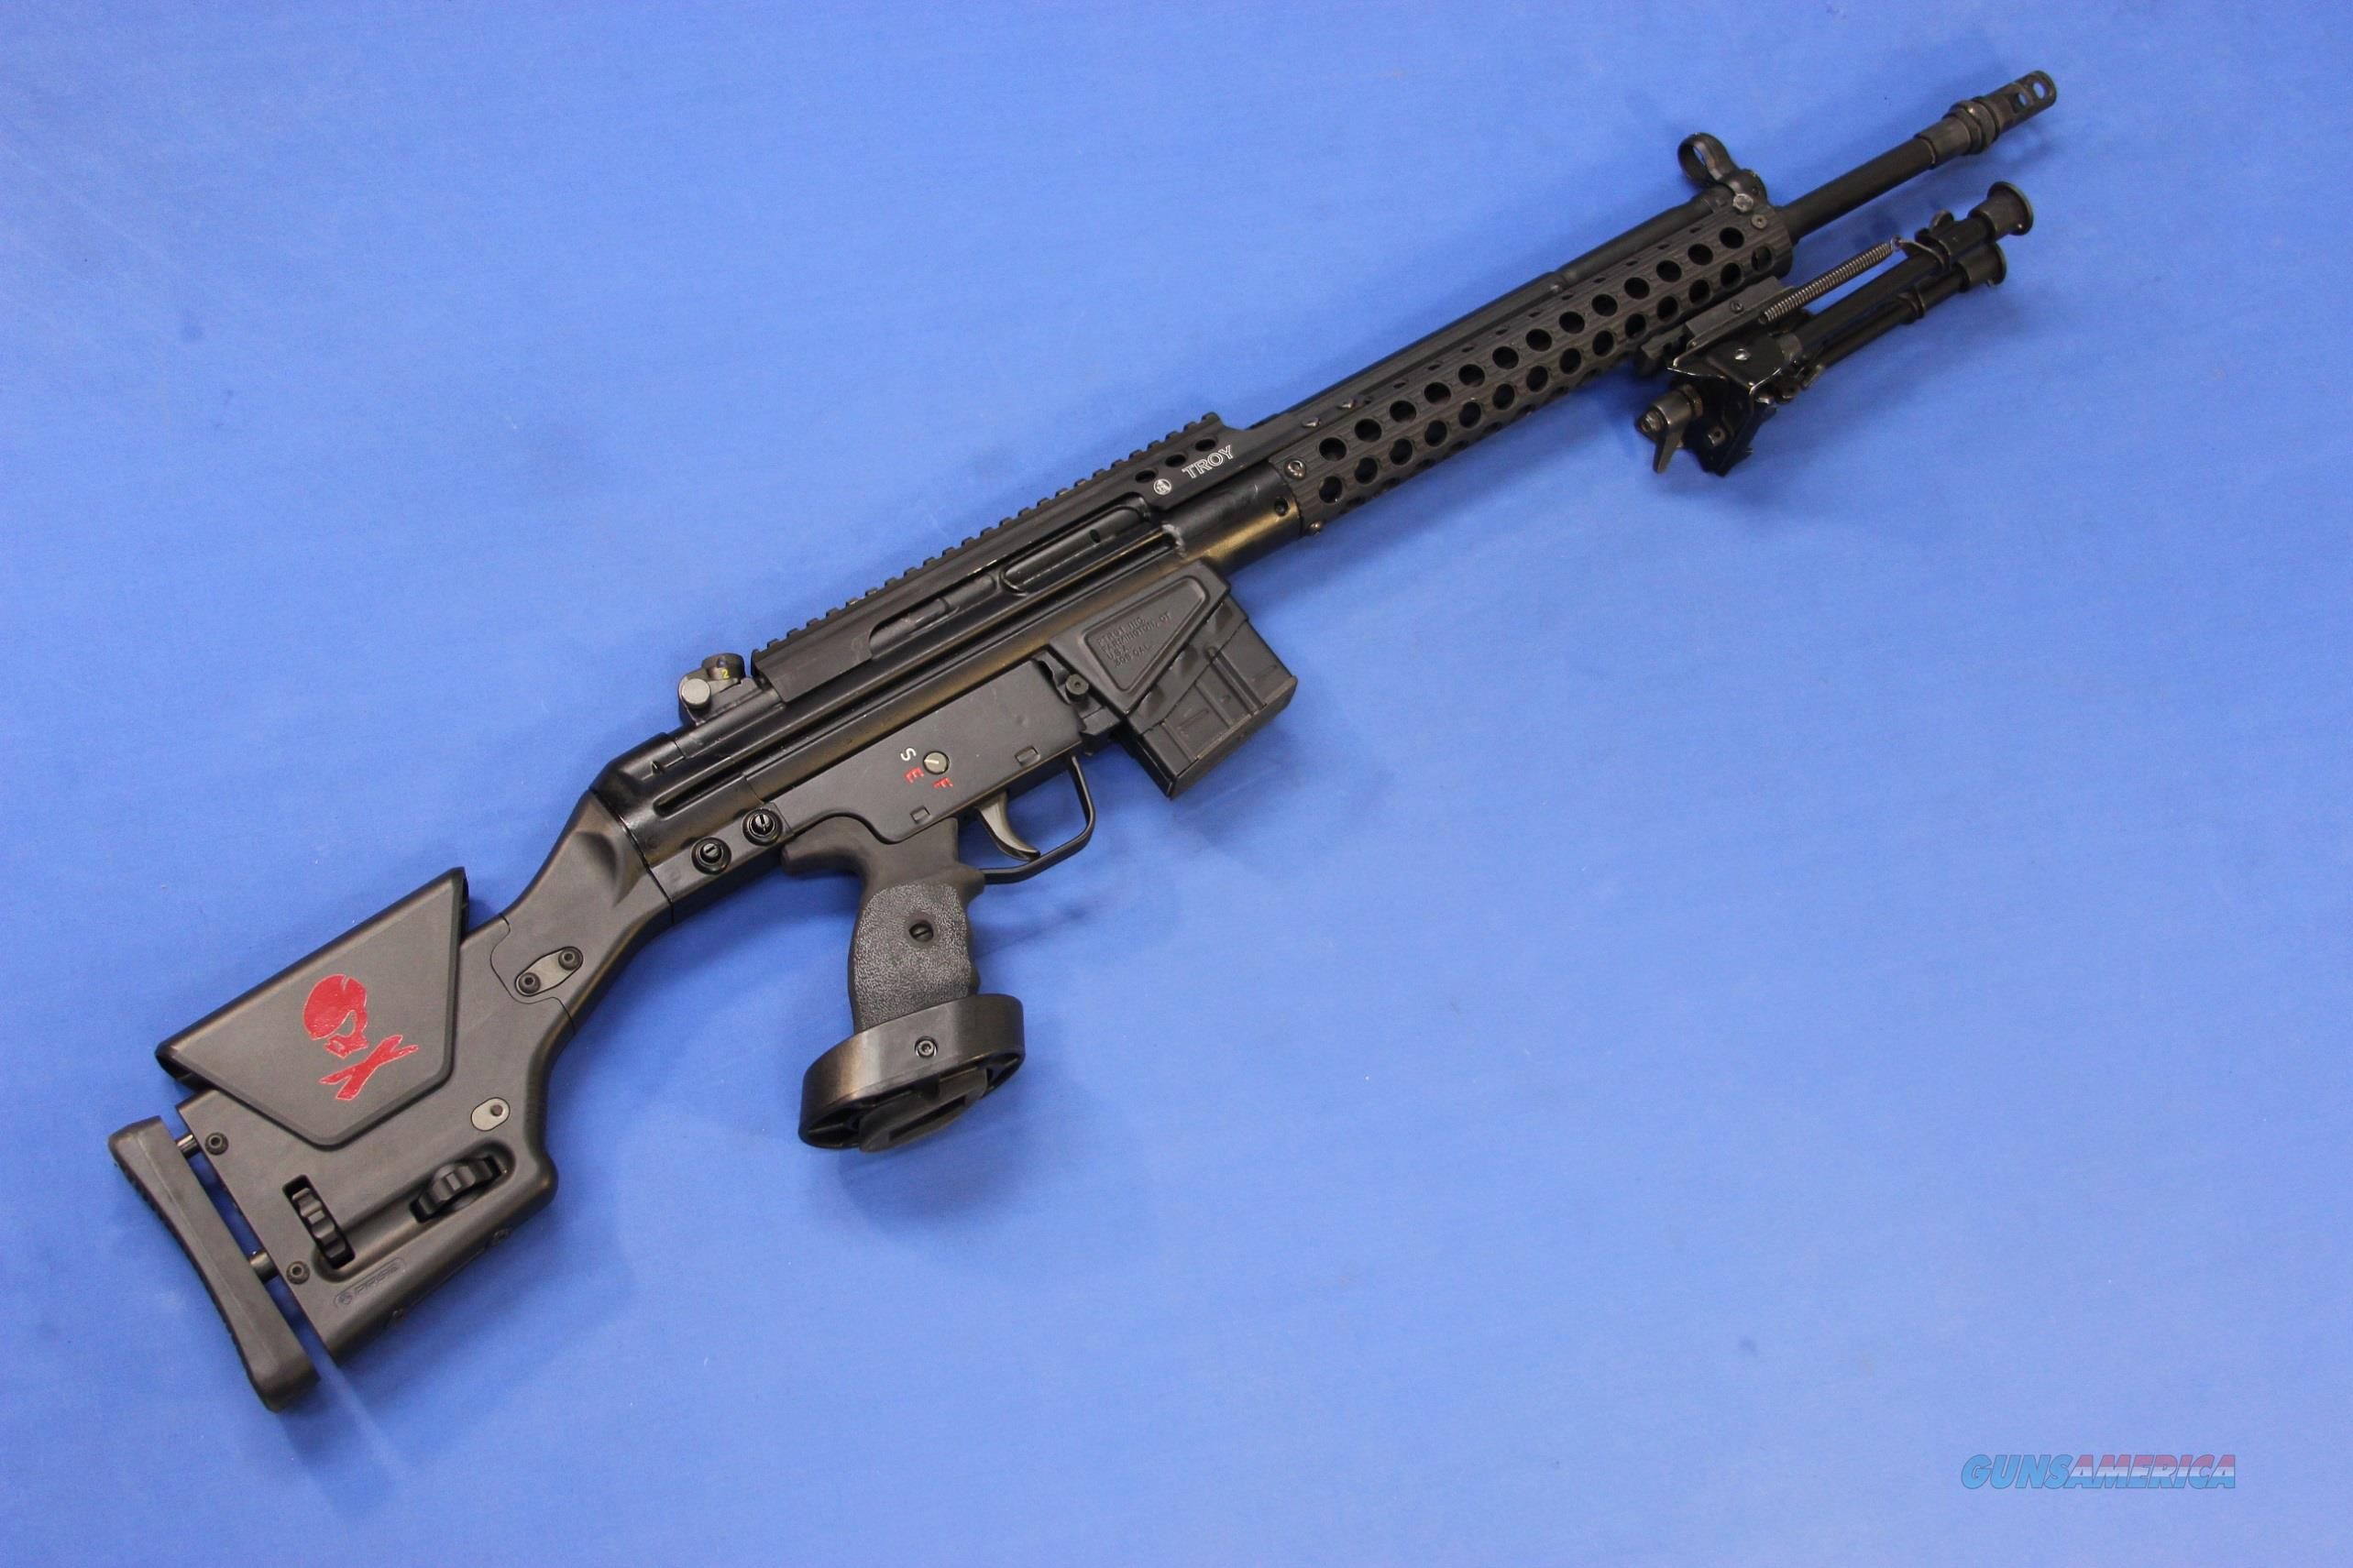 PTR INDUSTRIES PTR-91  308 WIN w/TROY G3 RAIL